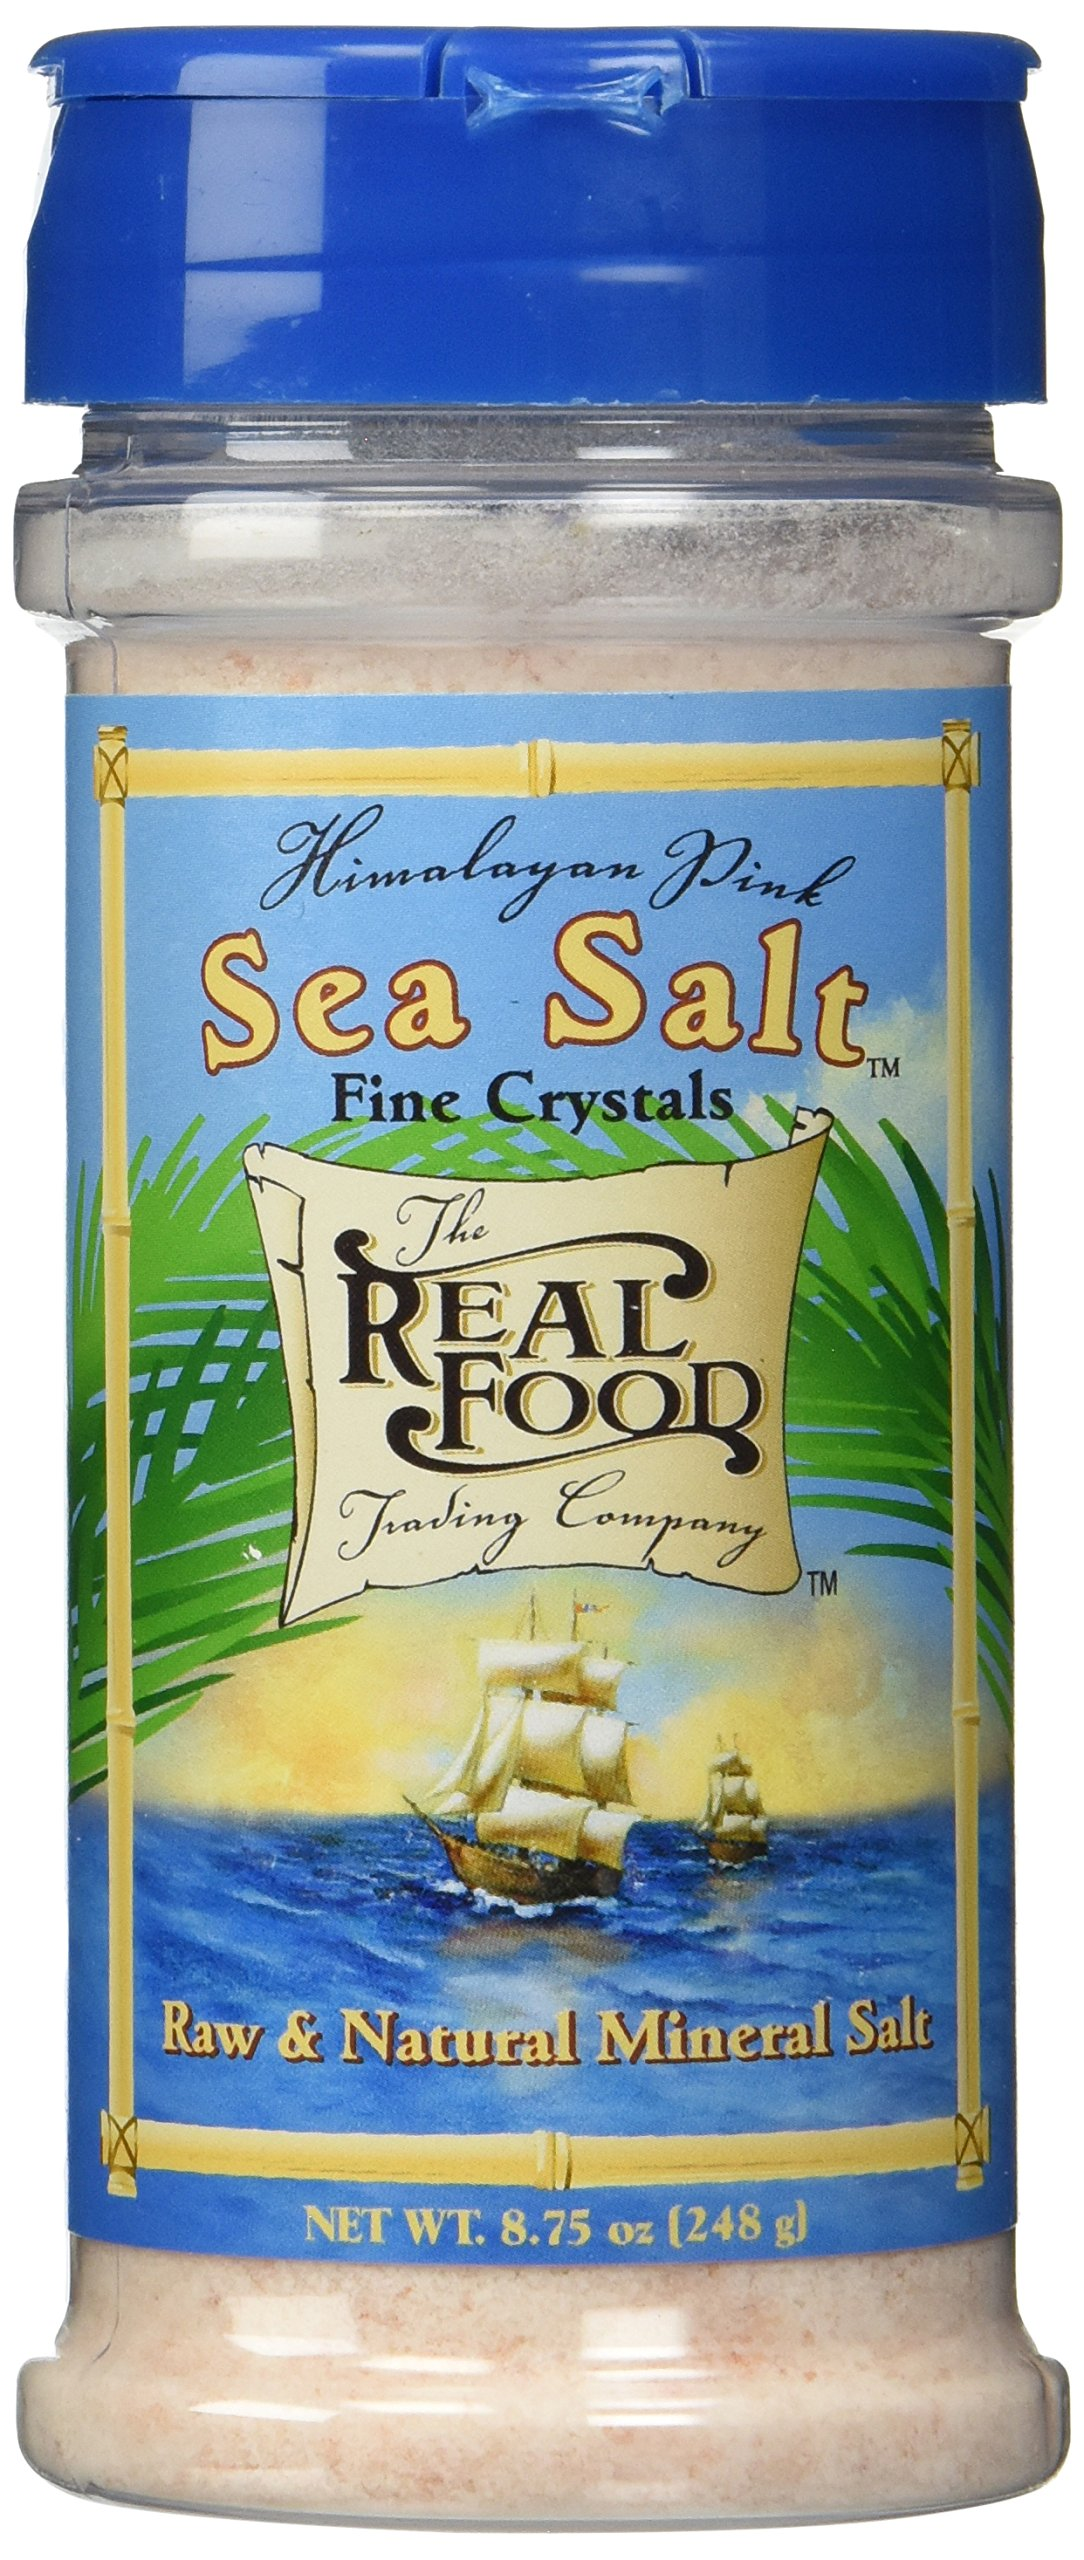 Funfresh Foods Real Food Trading Company Himalayan Pink Sea Salt, 8.75-Ounce (Pack of 3)